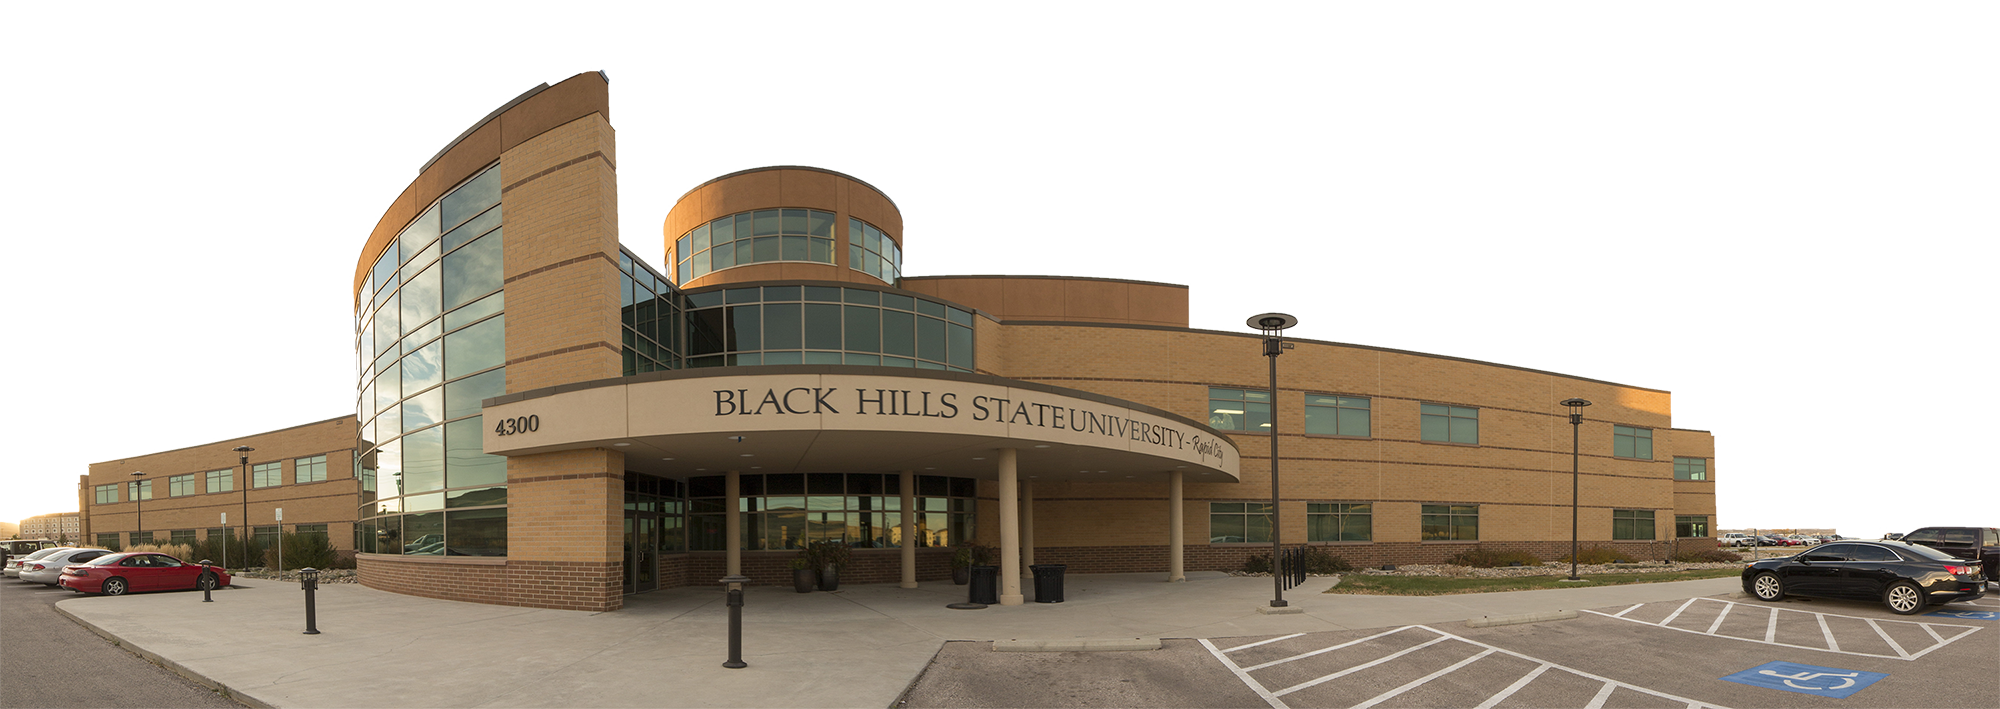 Black Hills State University Rapid City